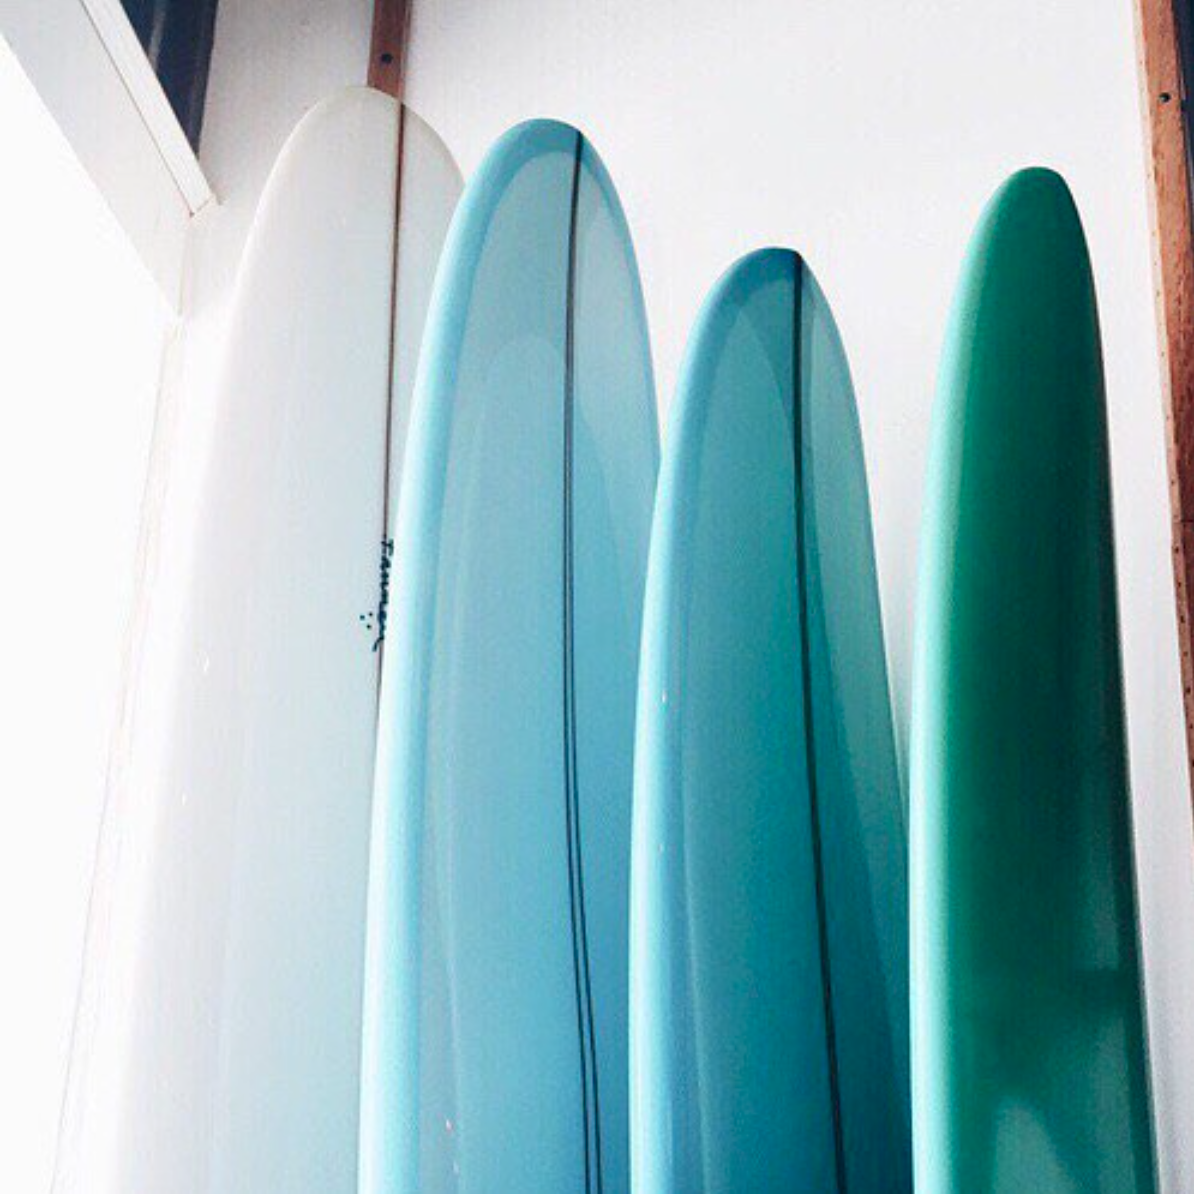 Shades of Blue Surfboards